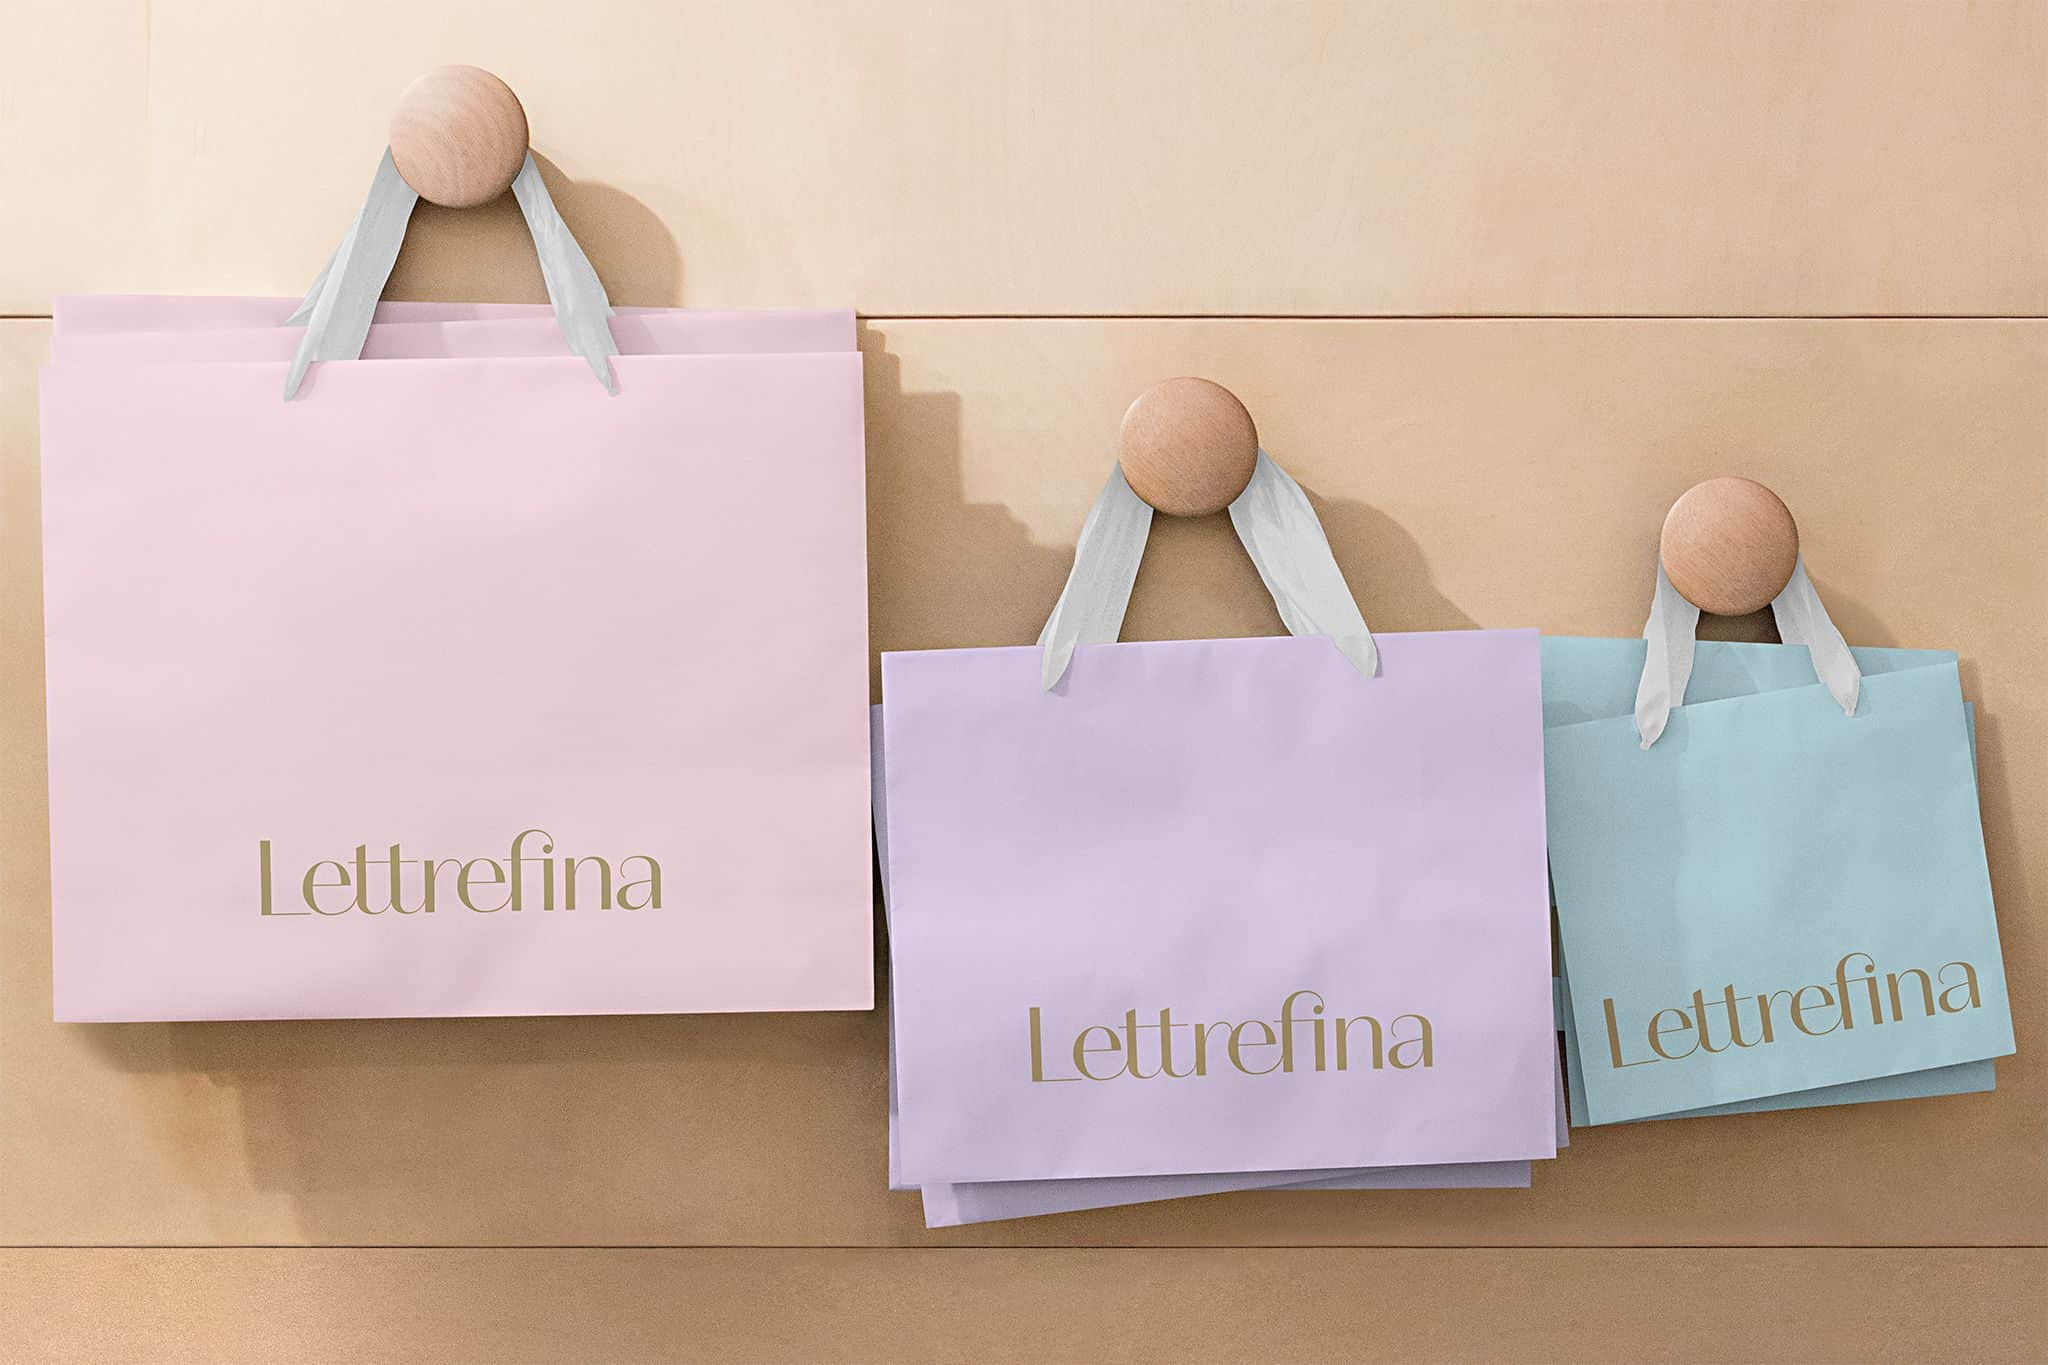 Custom shopping bags for Lettrefina Linens & Monogrammes | Designed by Field of Study: A branding and graphic design consultancy | Houston TX | Jennifer Blanco & John Earles